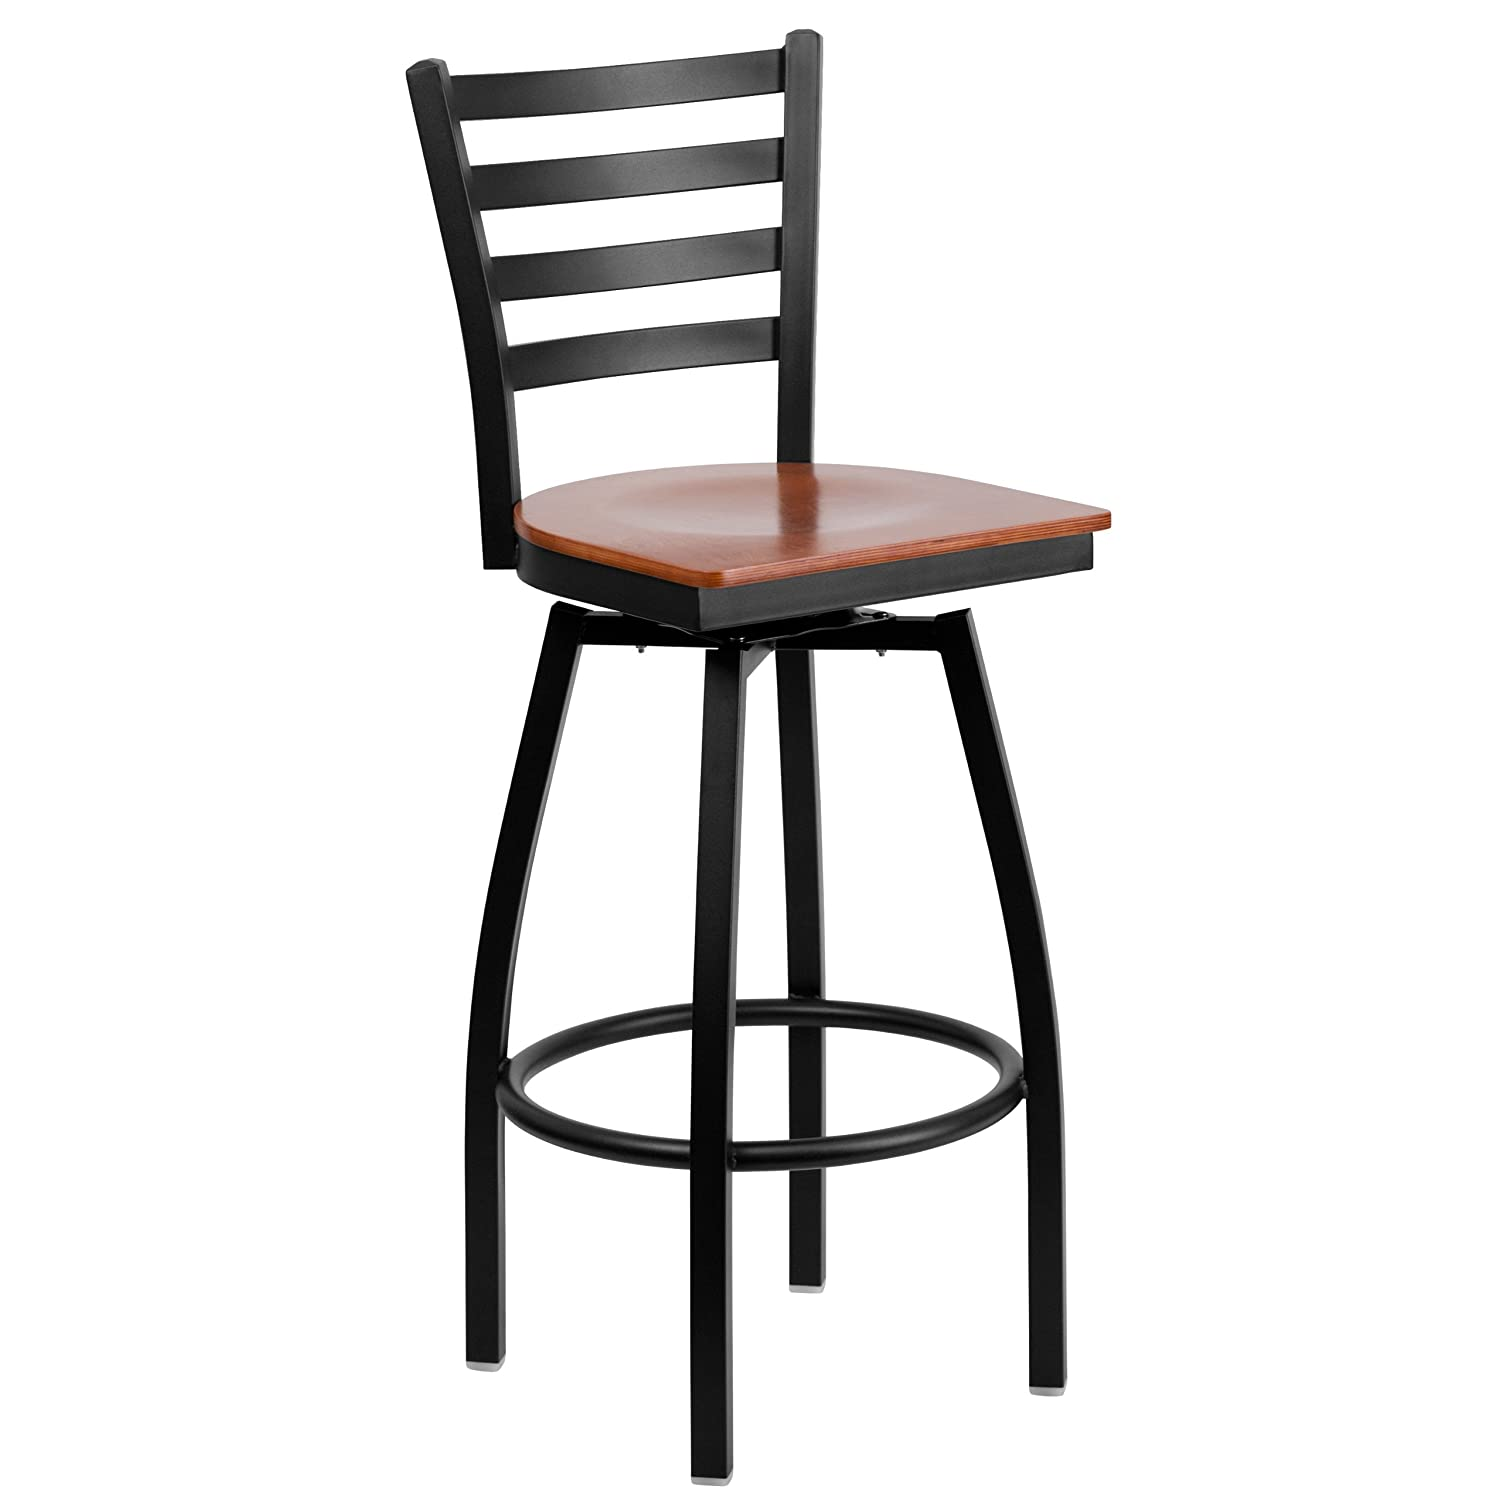 wooden seat bar stools. Amazon.com: Flash Furniture HERCULES Series Black Ladder Back Swivel Metal Barstool - Cherry Wood Seat: Home \u0026 Kitchen Wooden Seat Bar Stools U